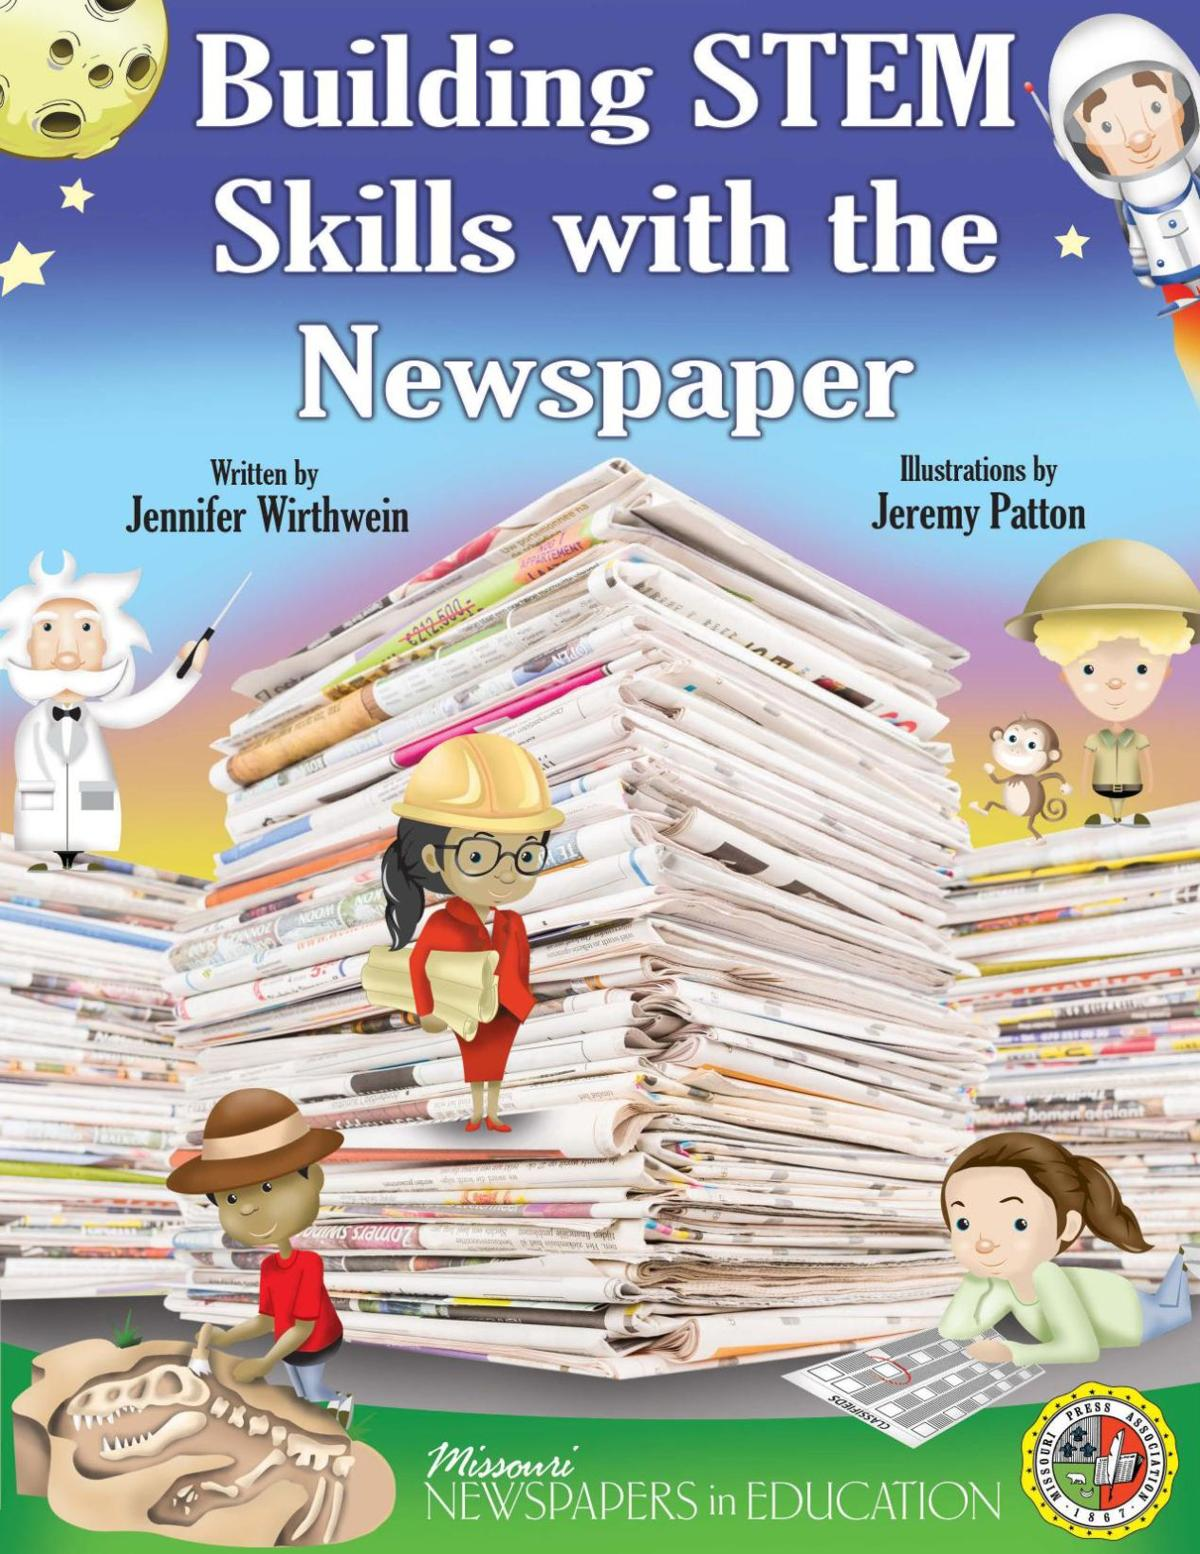 Building STEM Skills with the Newspaper